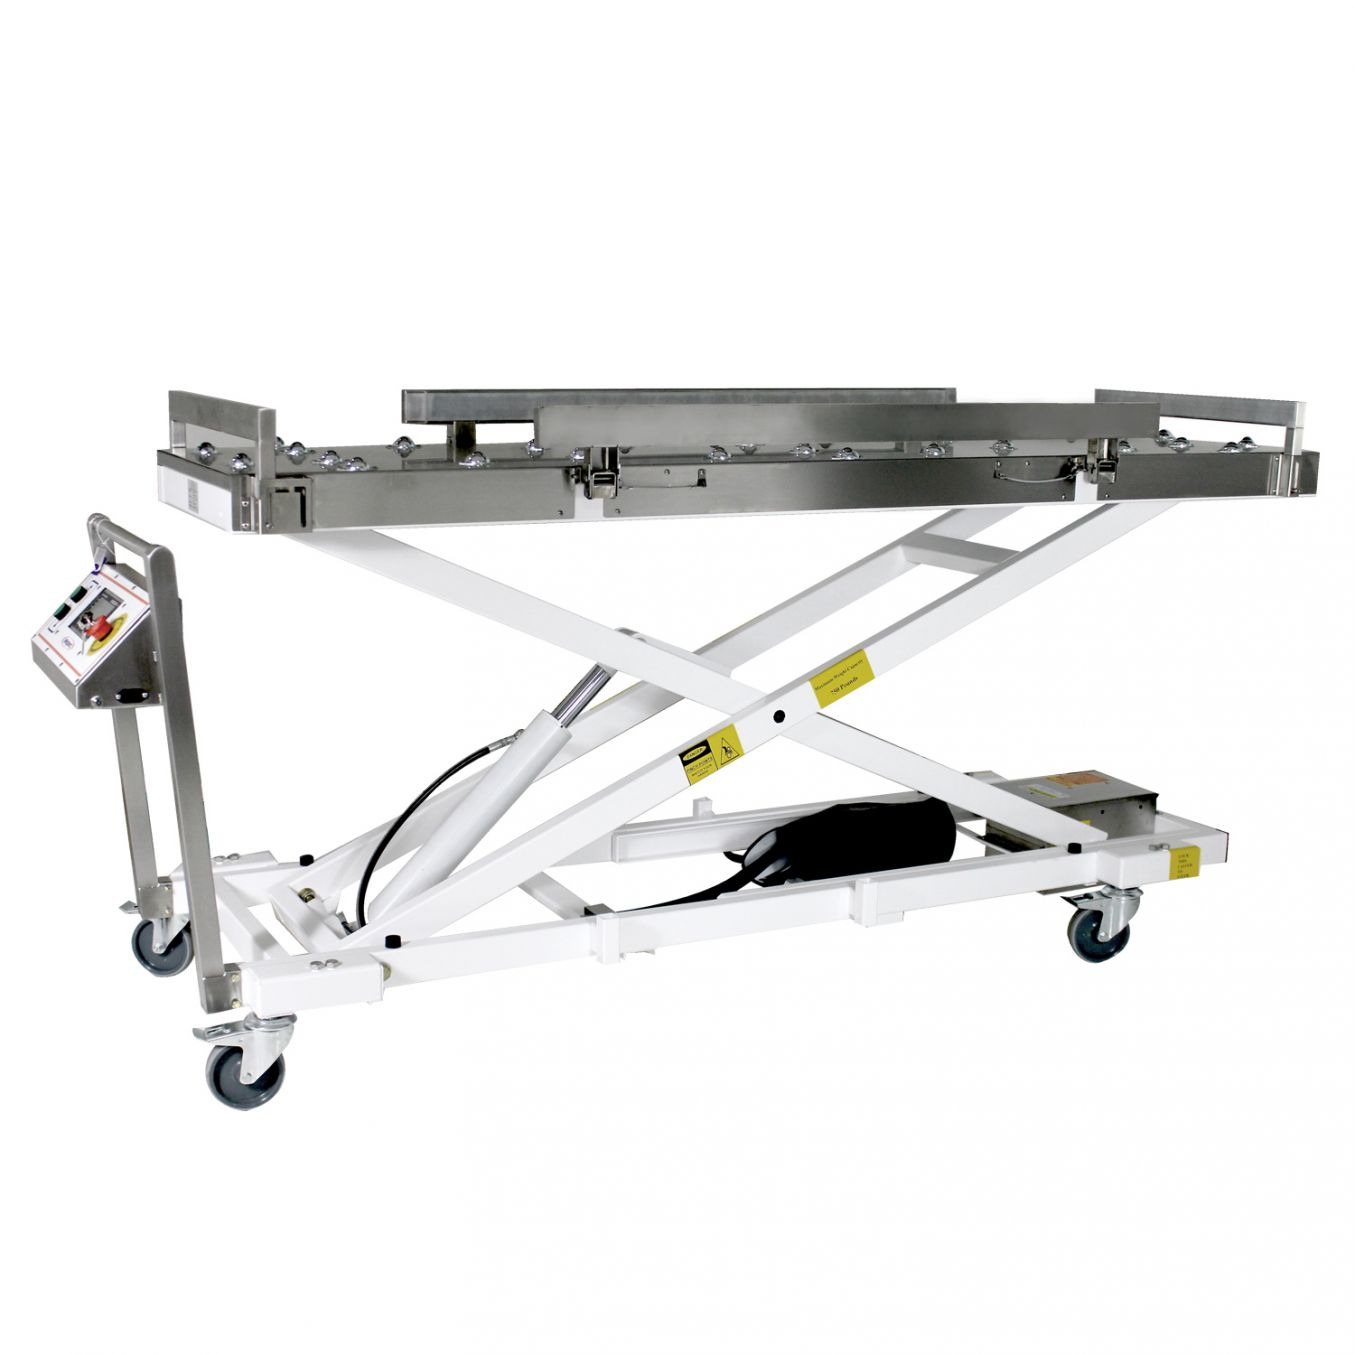 The JD5000 Hydraulic Cadaver Lift